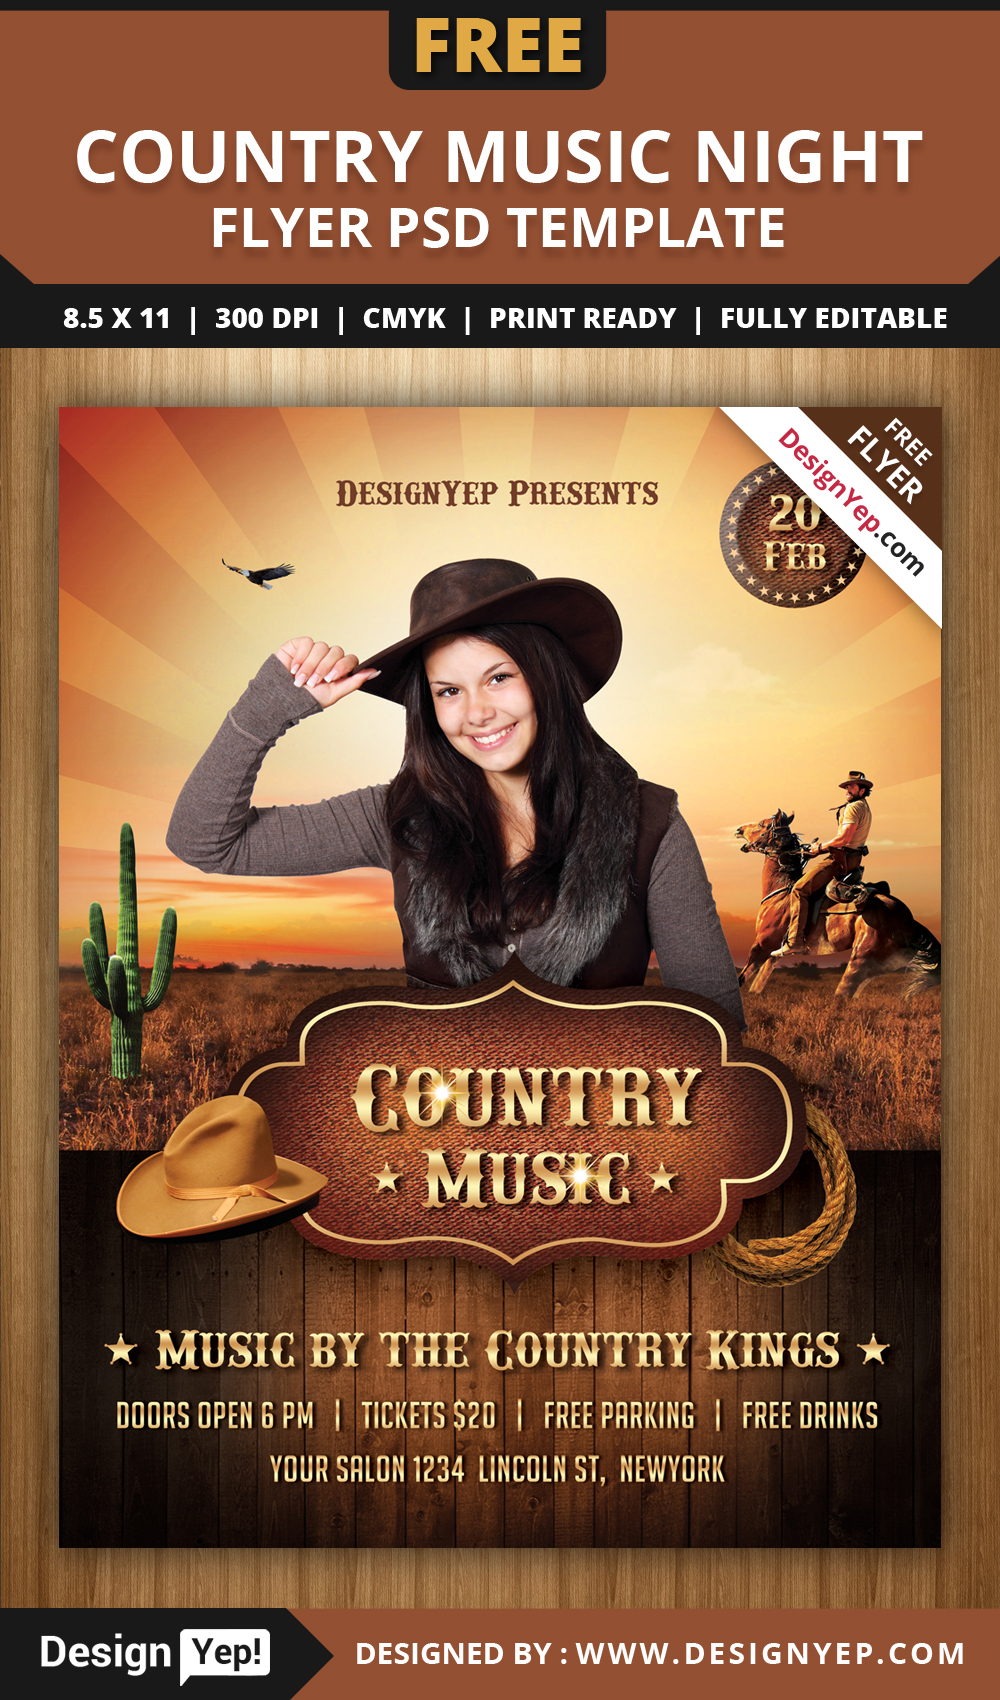 free country music night flyer psd template on behance